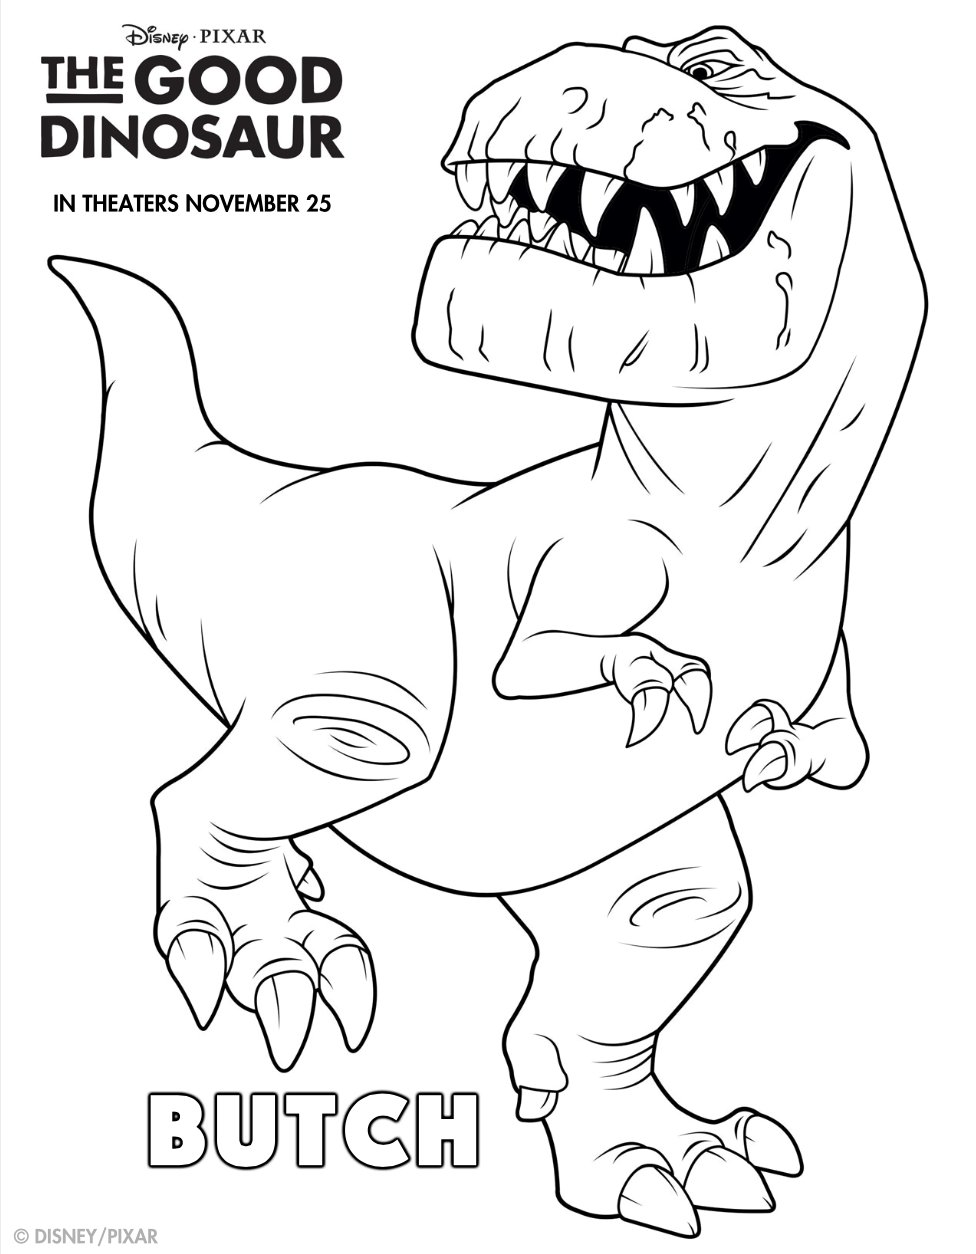 Figuras para colorear gratis de Un Gran Dinosaurio - Hispana Global